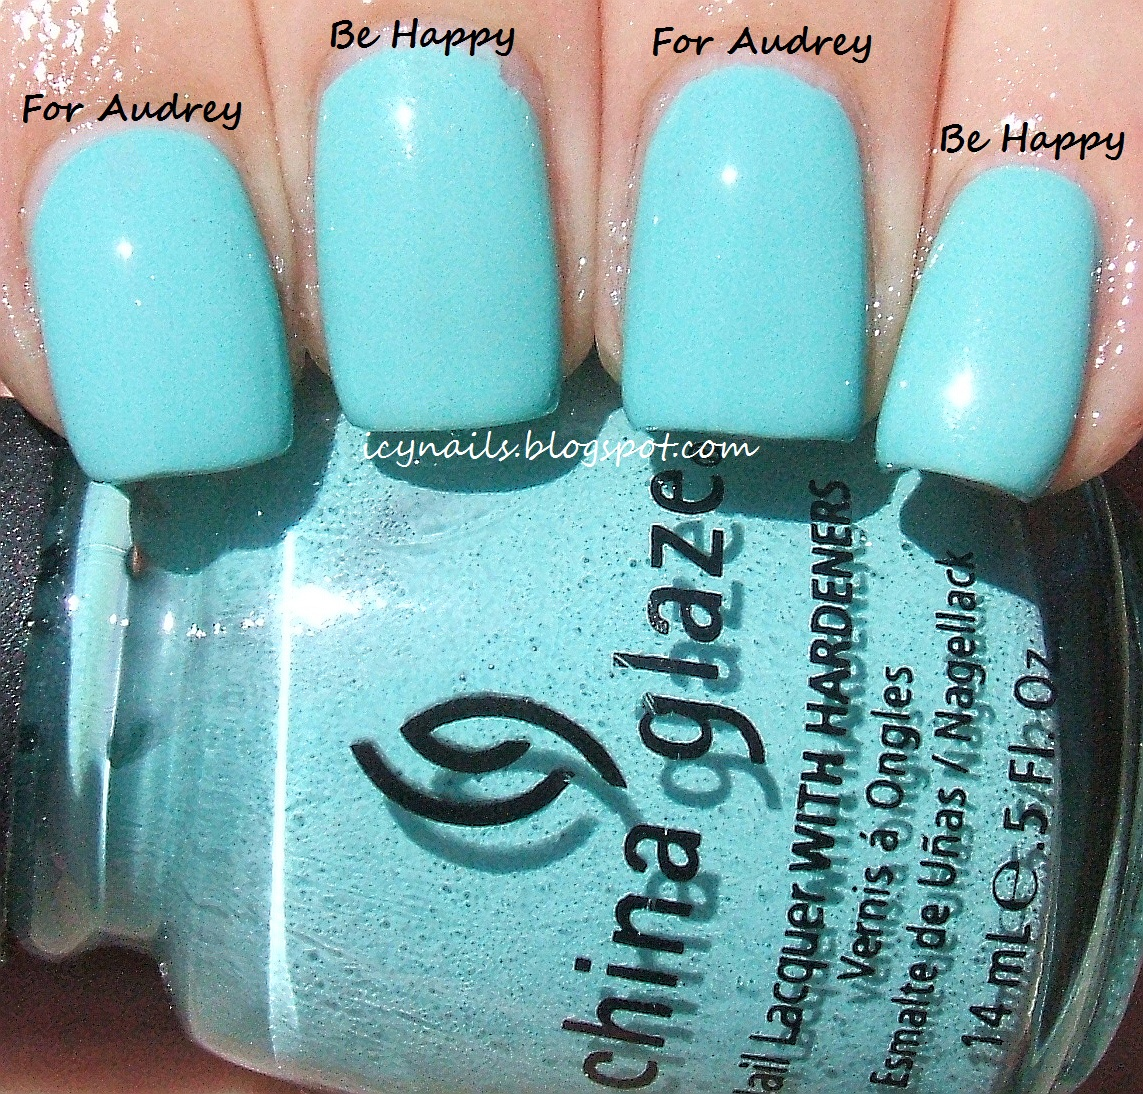 165c5e7df3d ... Happy to my middle and pinkie finger nails. Two coats with Seche Vite.  I photographed the comparison with both the China Glaze and Sinful Colors  bottles ...